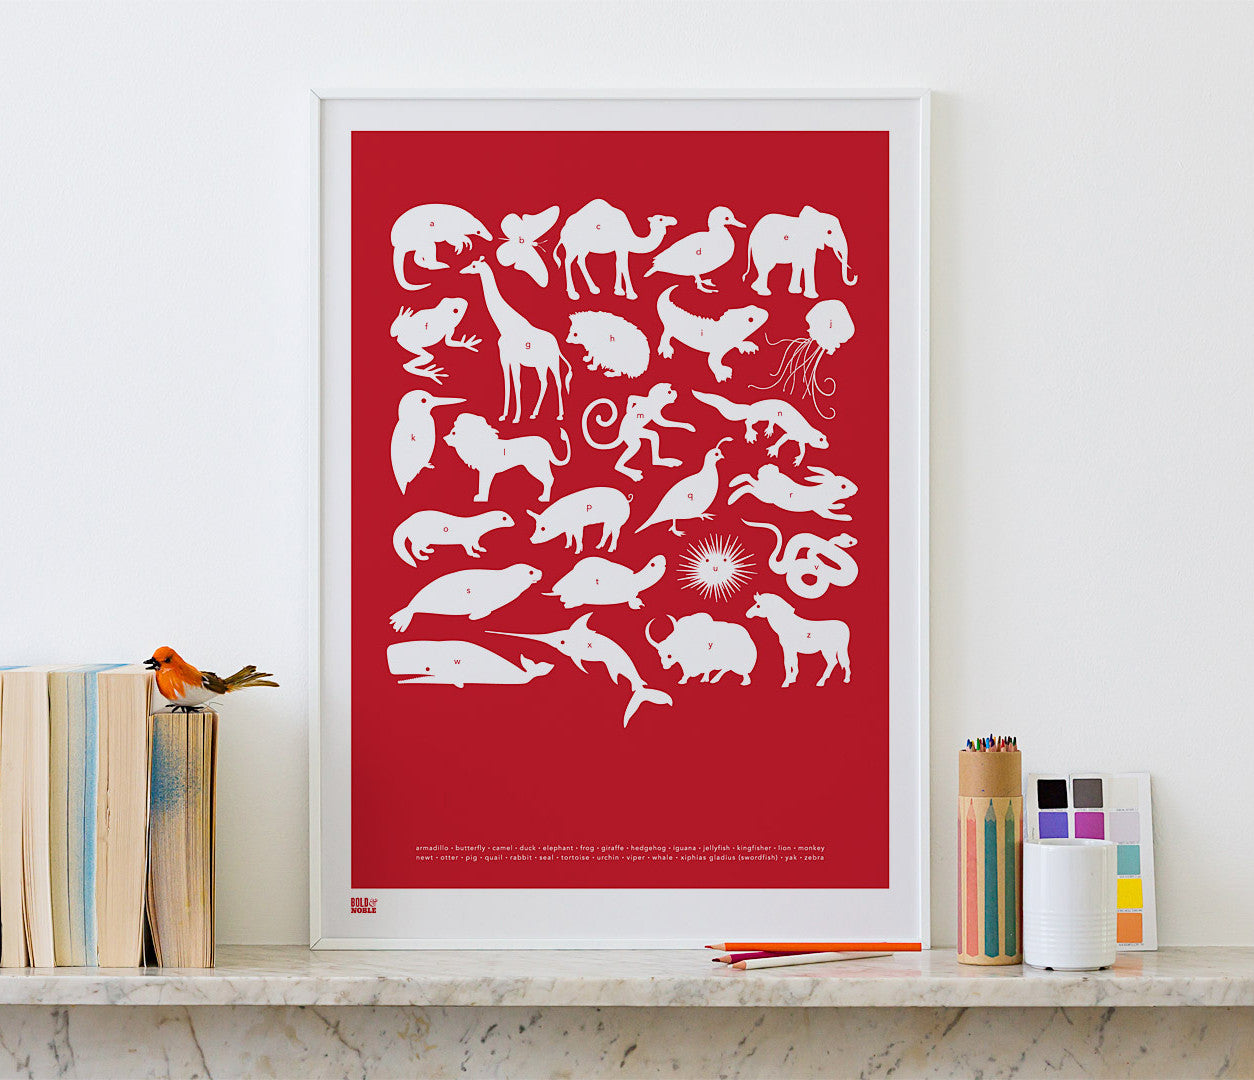 Pictures and wall art, screen printed Creatures A-Z poster in poppy red